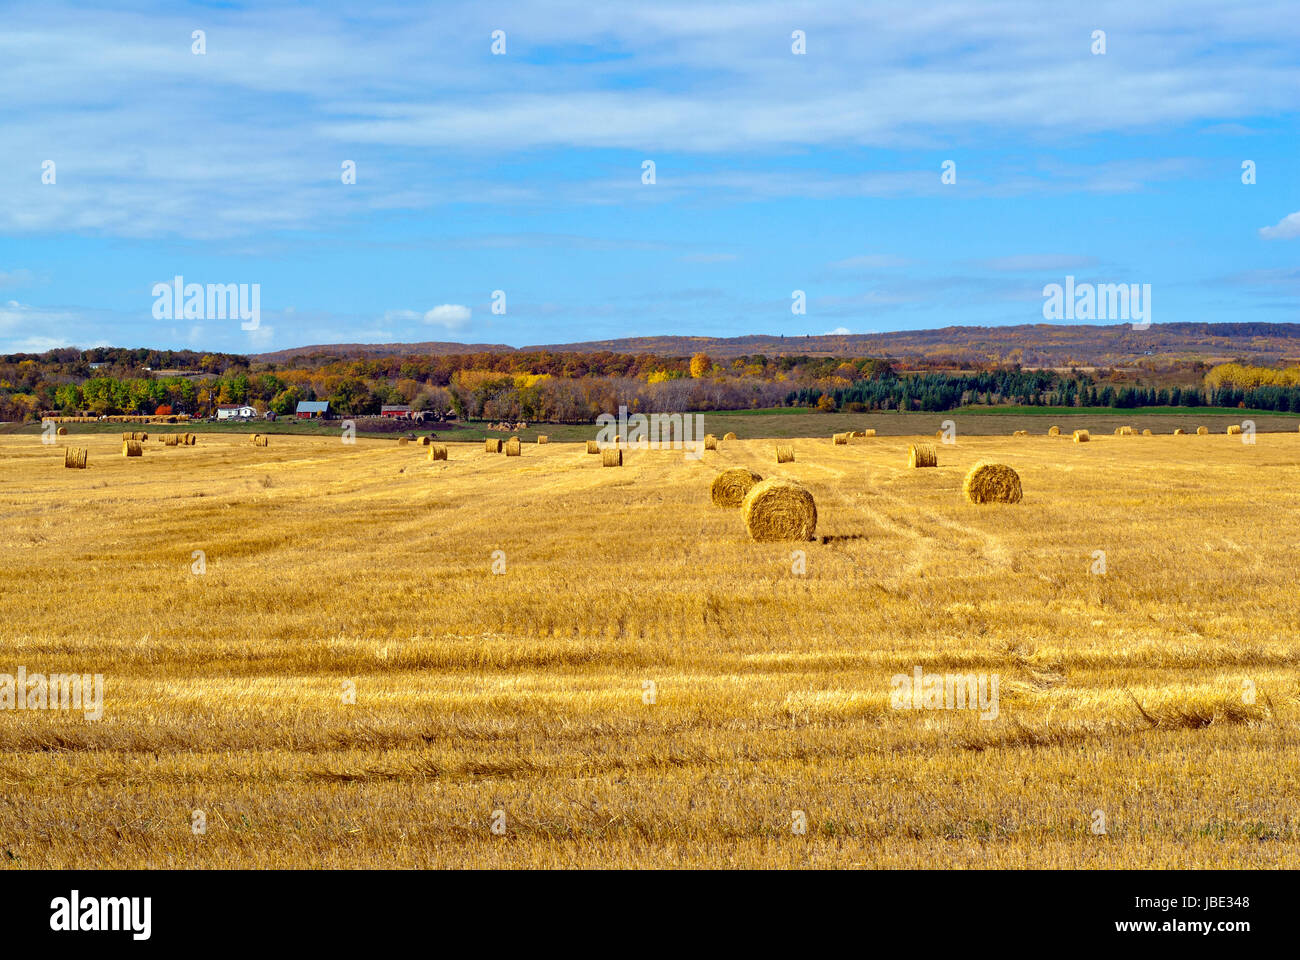 Harvested wheat field with round straw bales, Manitoba, Canada - Stock Image